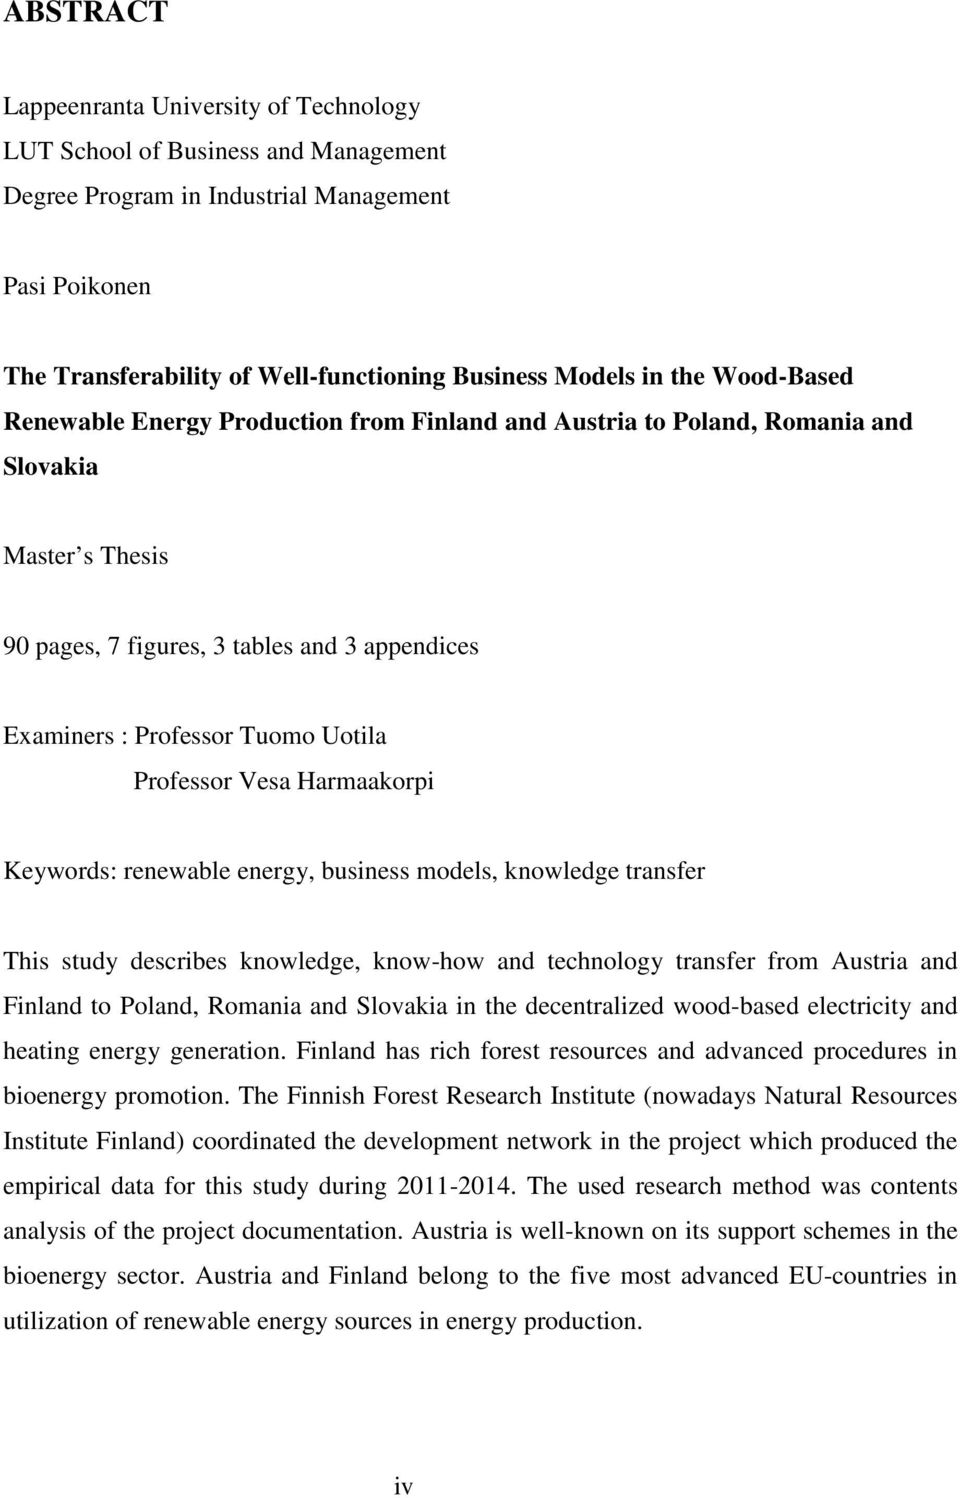 Professor Vesa Harmaakorpi Keywords: renewable energy, business models, knowledge transfer This study describes knowledge, know-how and technology transfer from Austria and Finland to Poland, Romania